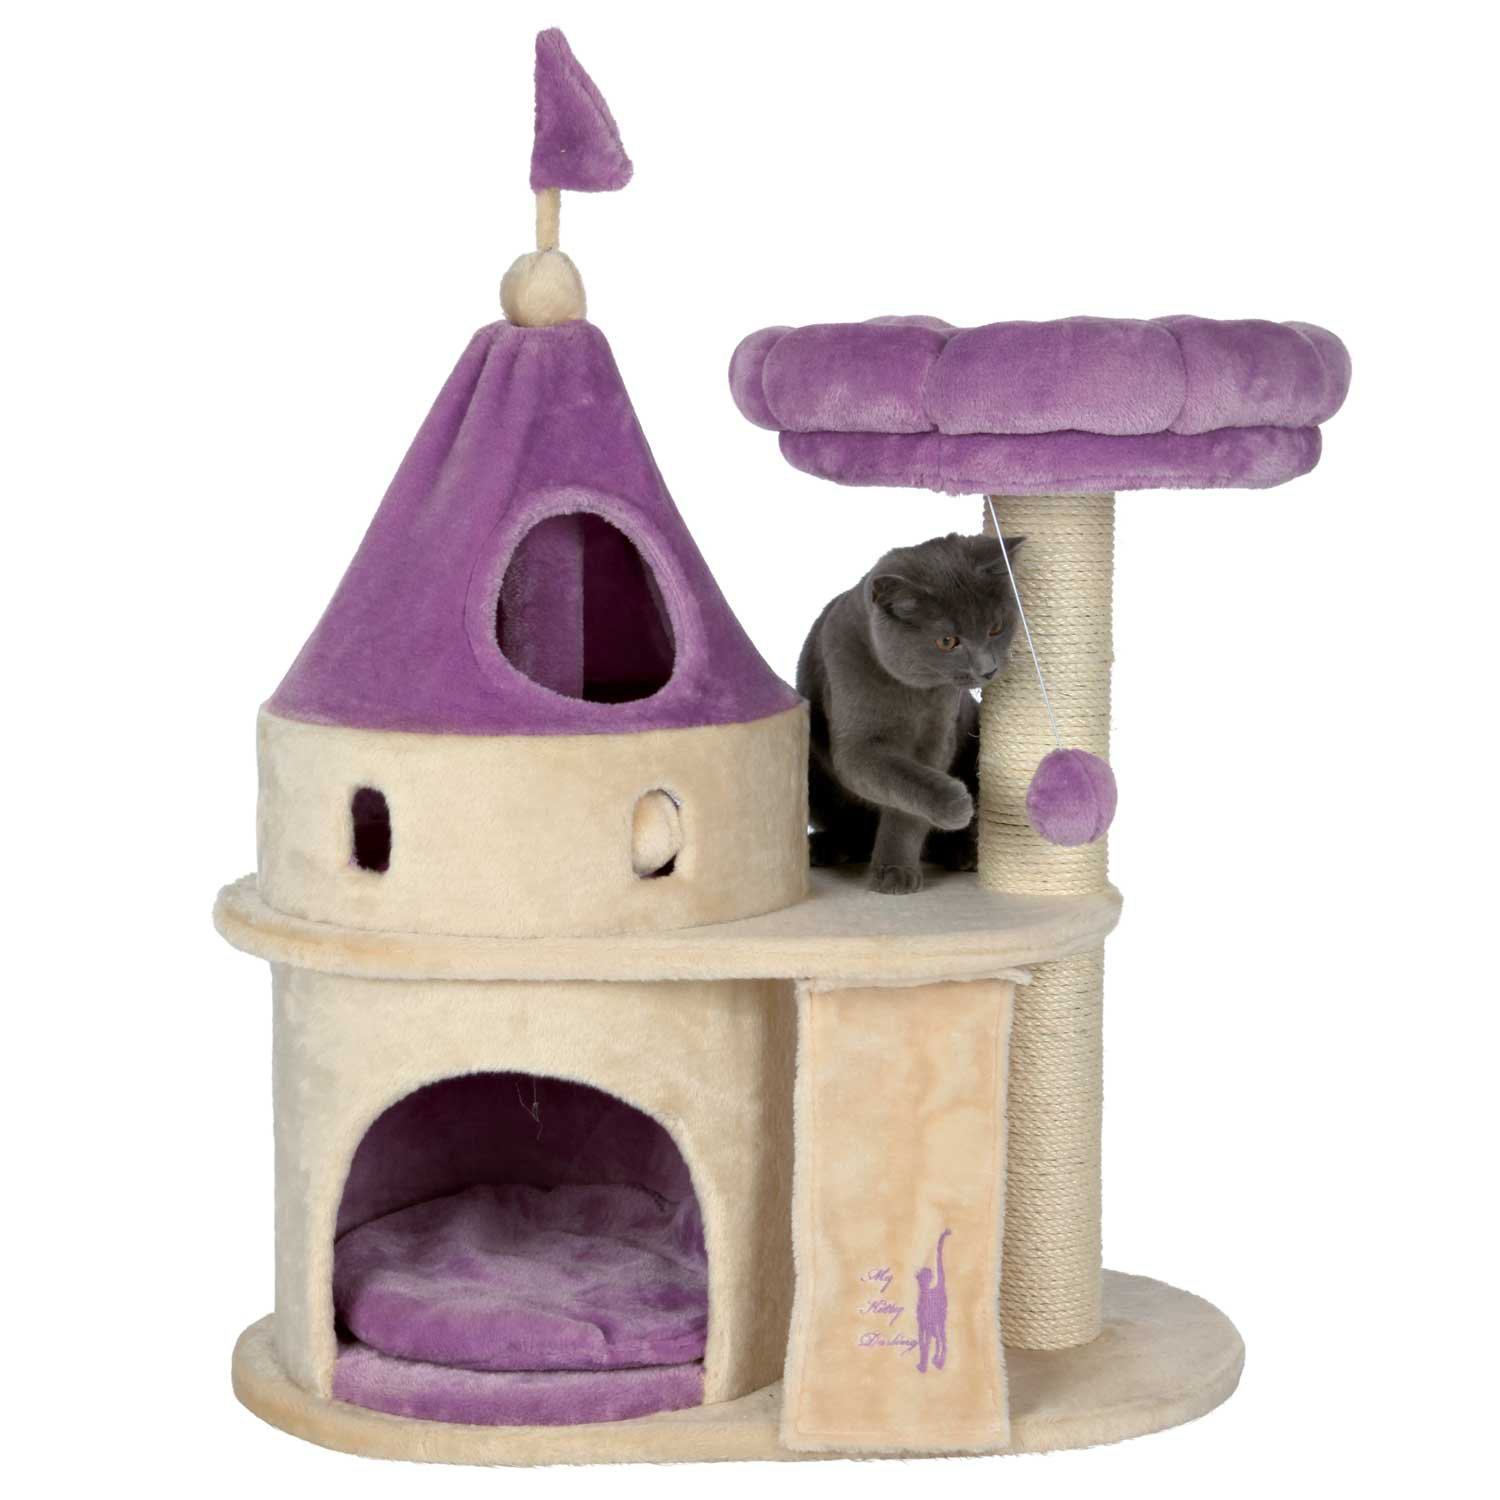 trixie my kitty darling castle in purple & beige | petco